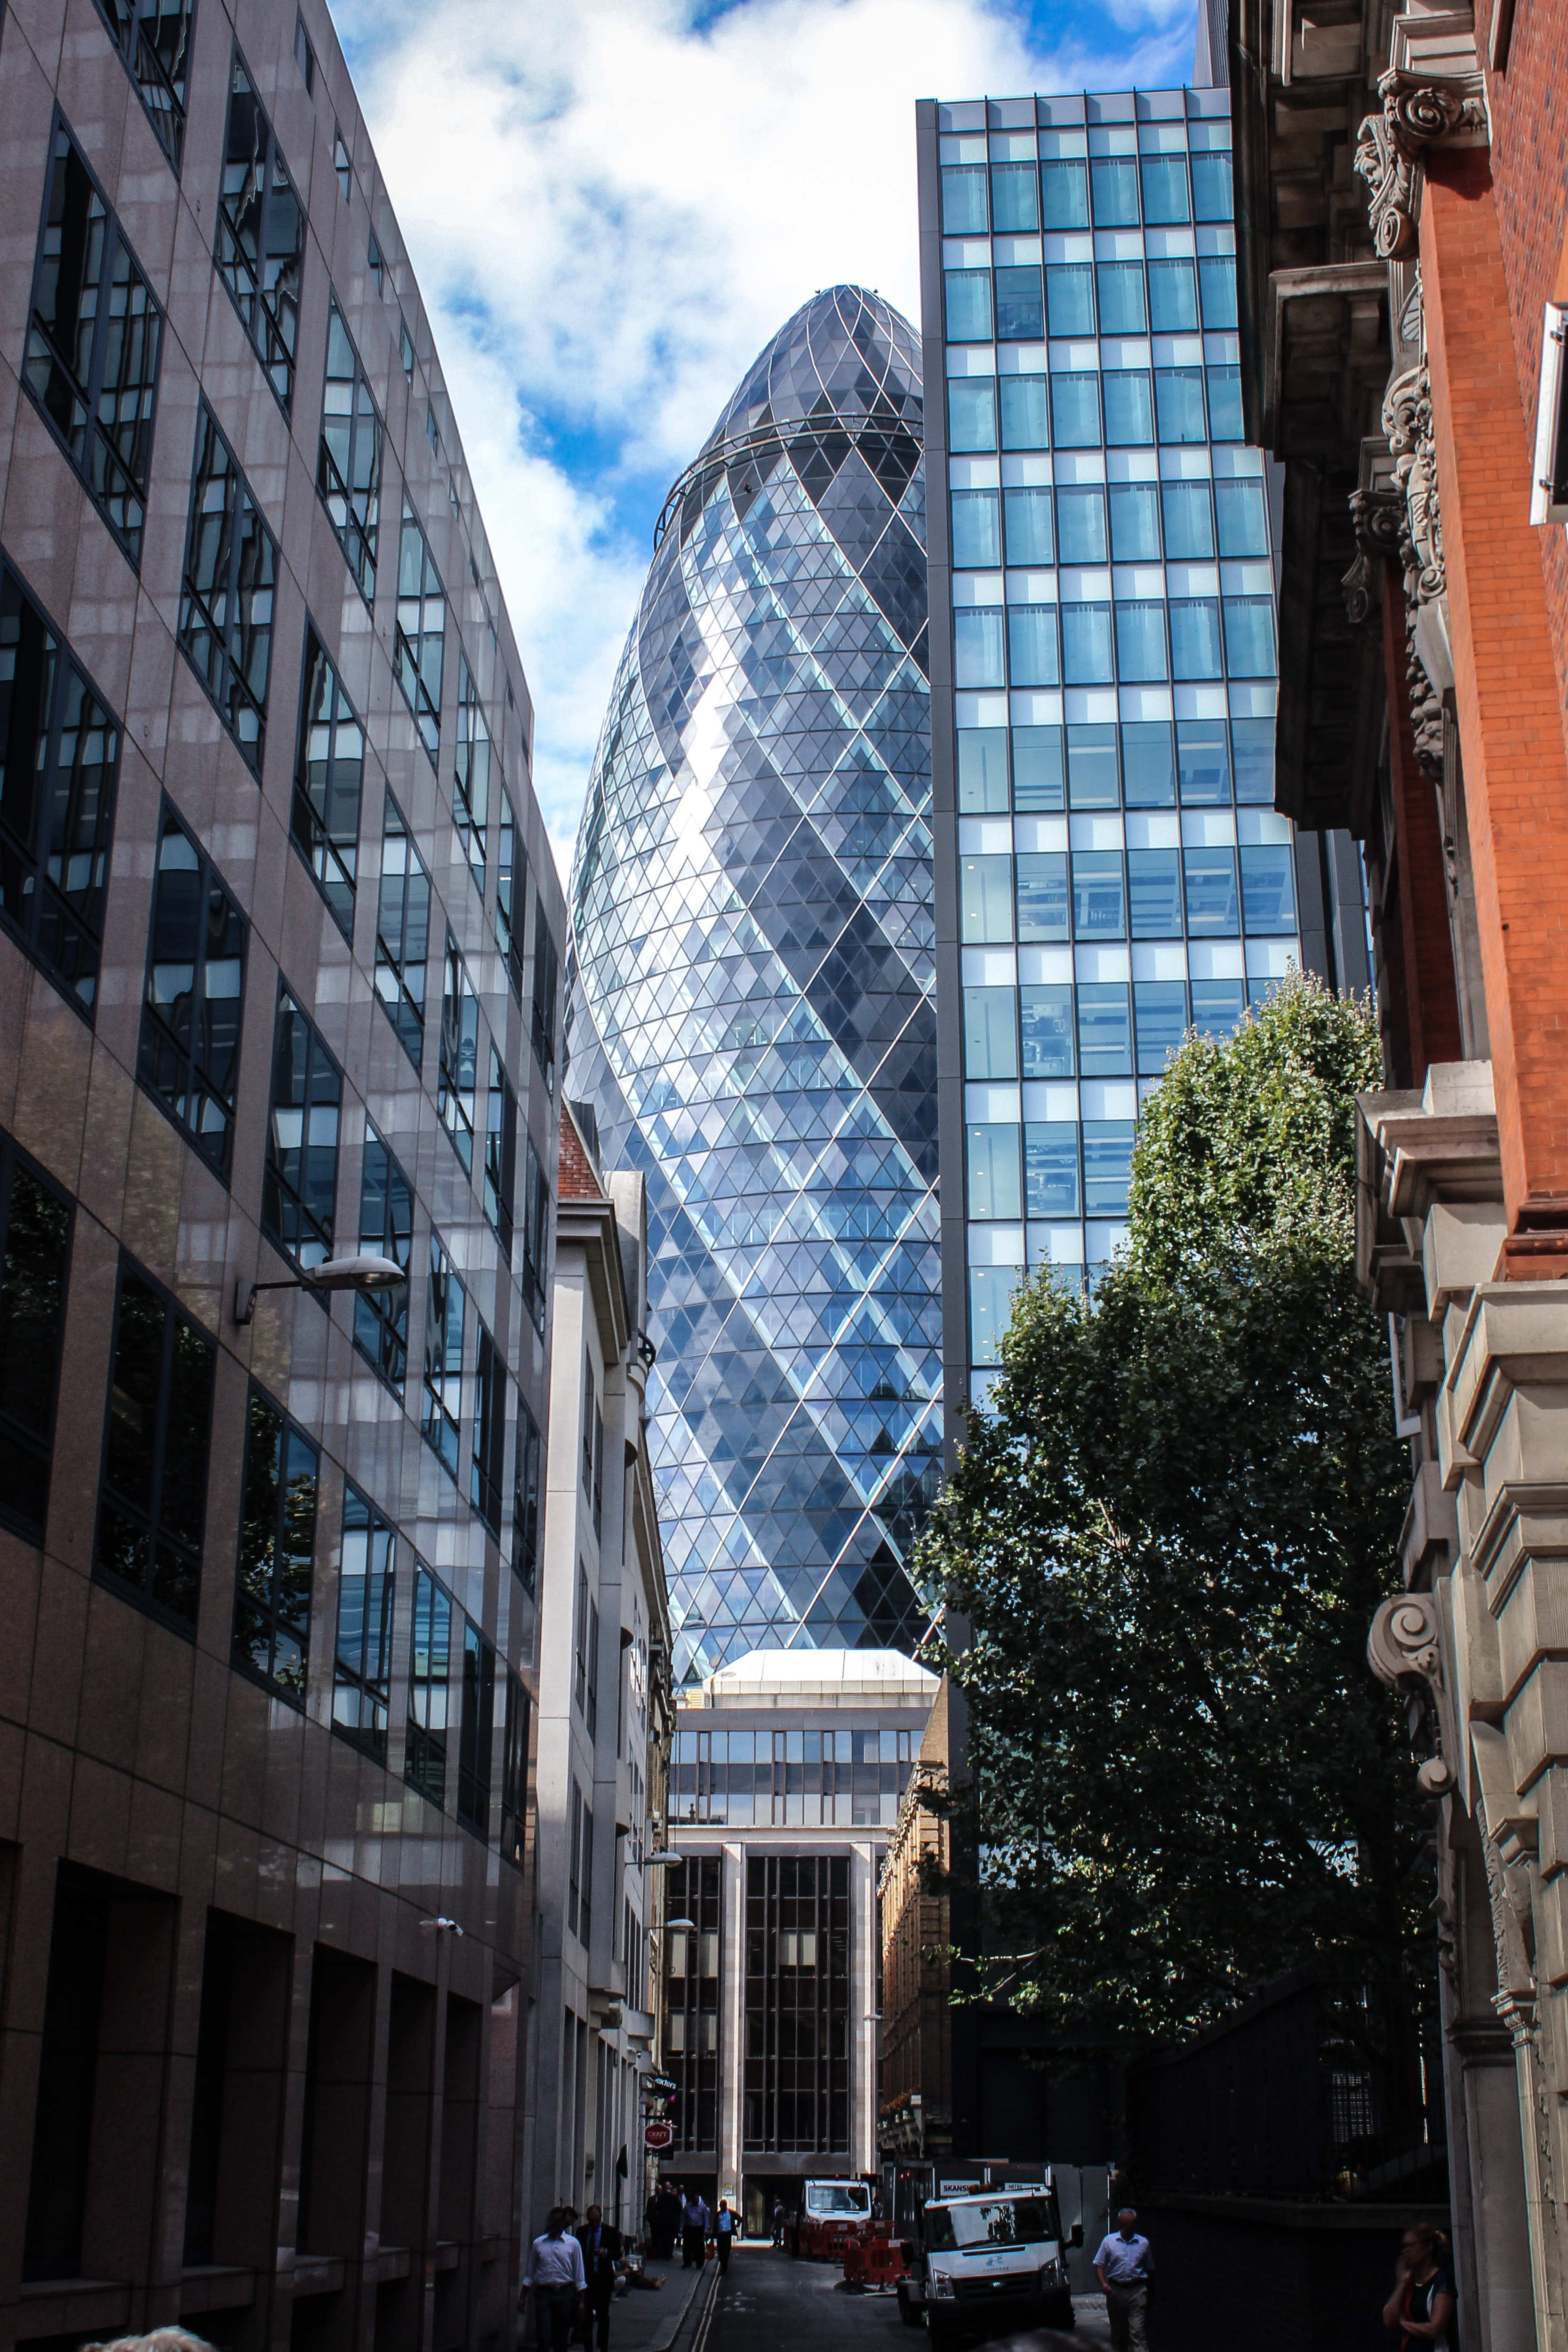 Grey and Blue Glass Bullet Tower, Architectural design, High, Urban, Tree, HQ Photo